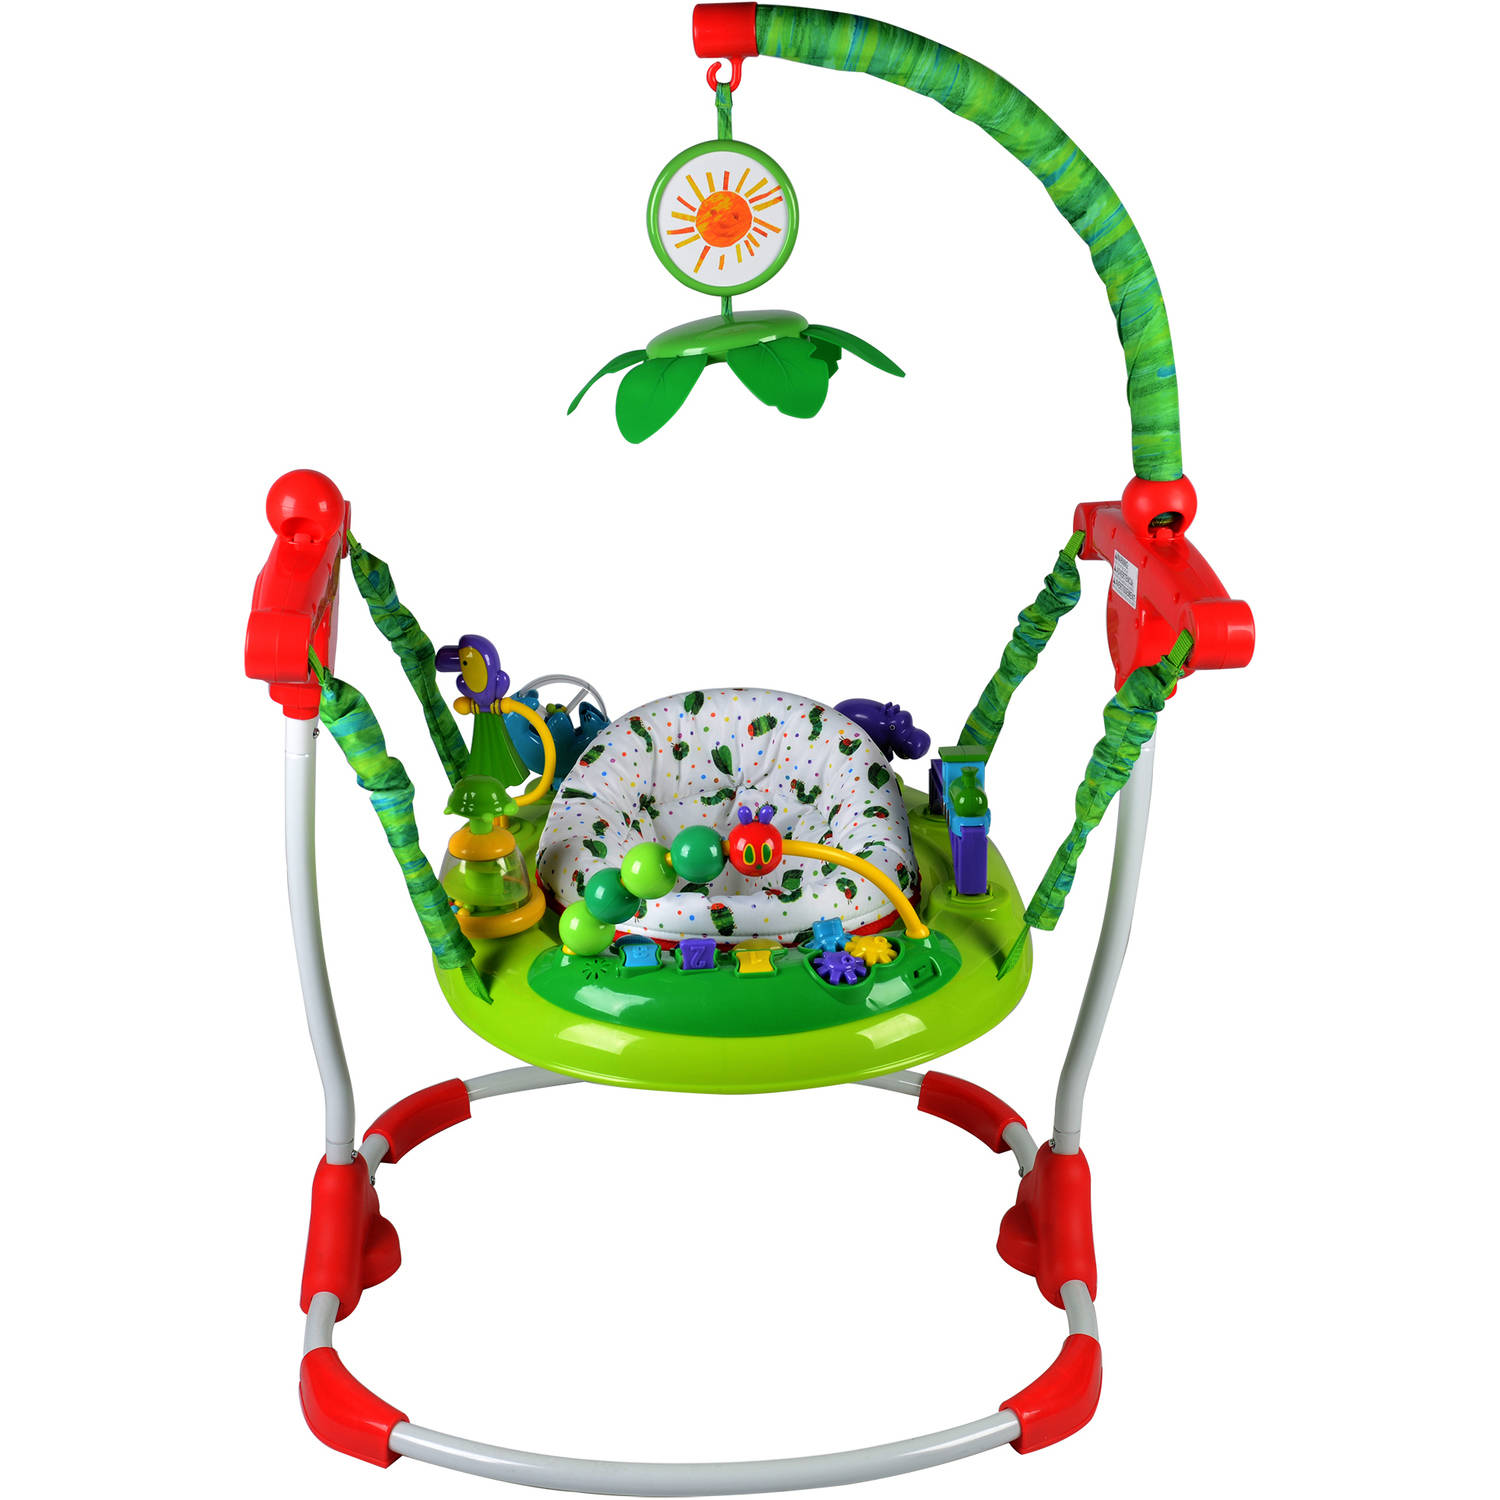 Best Baby Jumpers - Creative Baby Eric Carle The Very Hungry Caterpillar Review